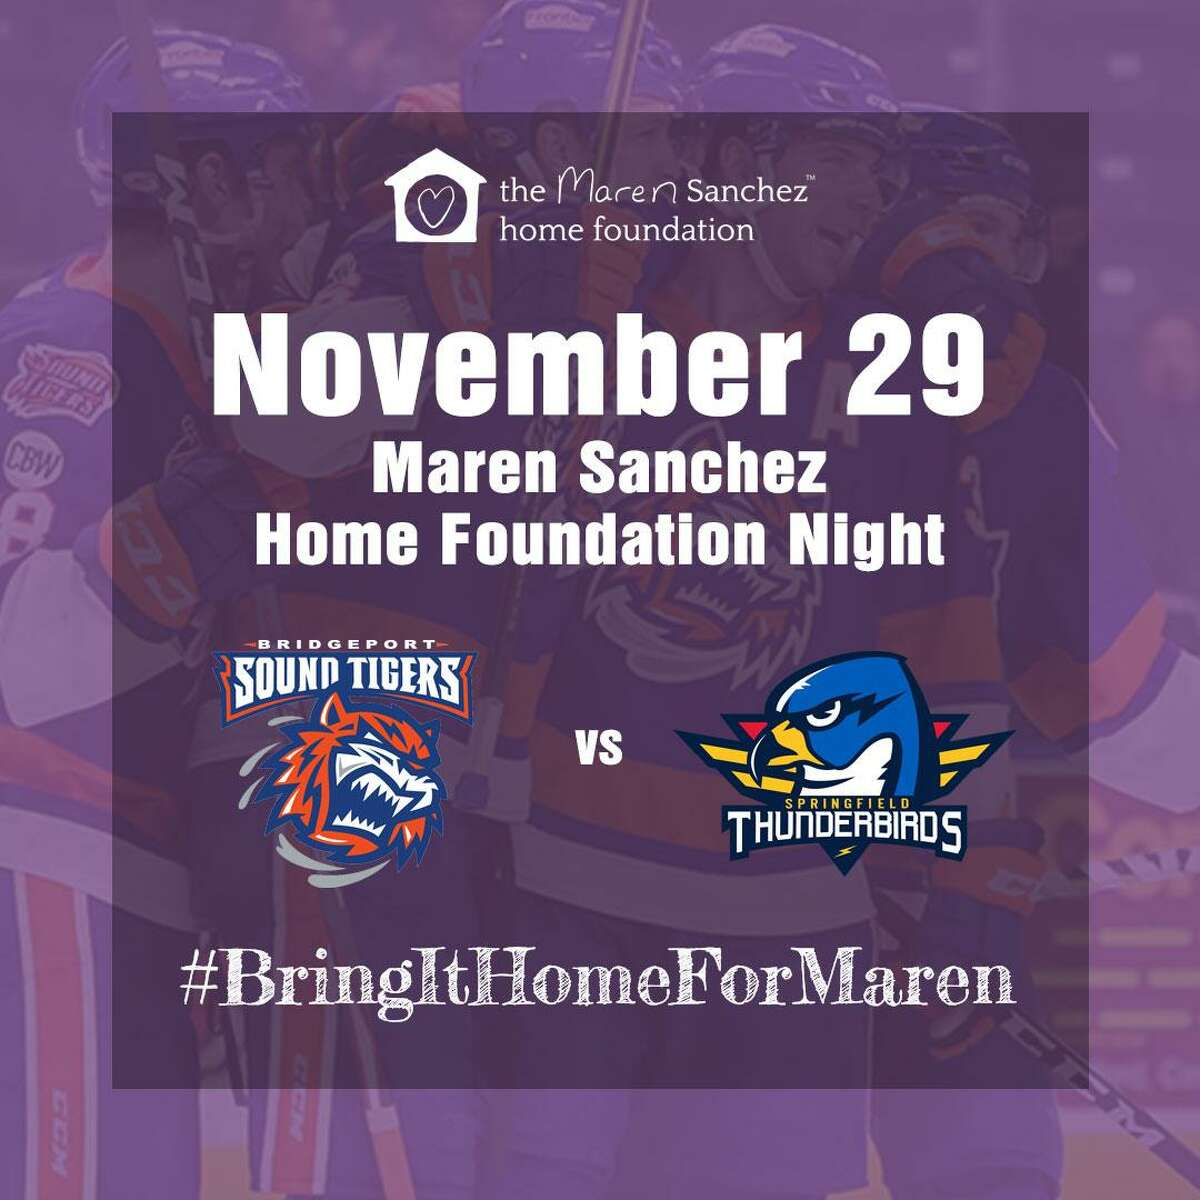 Maren Sanchez Home Foundation Night will be held at the Bridgeport Sound Tigers vs. Springfield Thunderbirds game on Friday, Nov. 29, at 7 p.m., at Webster Bank Arena in Bridgeport.